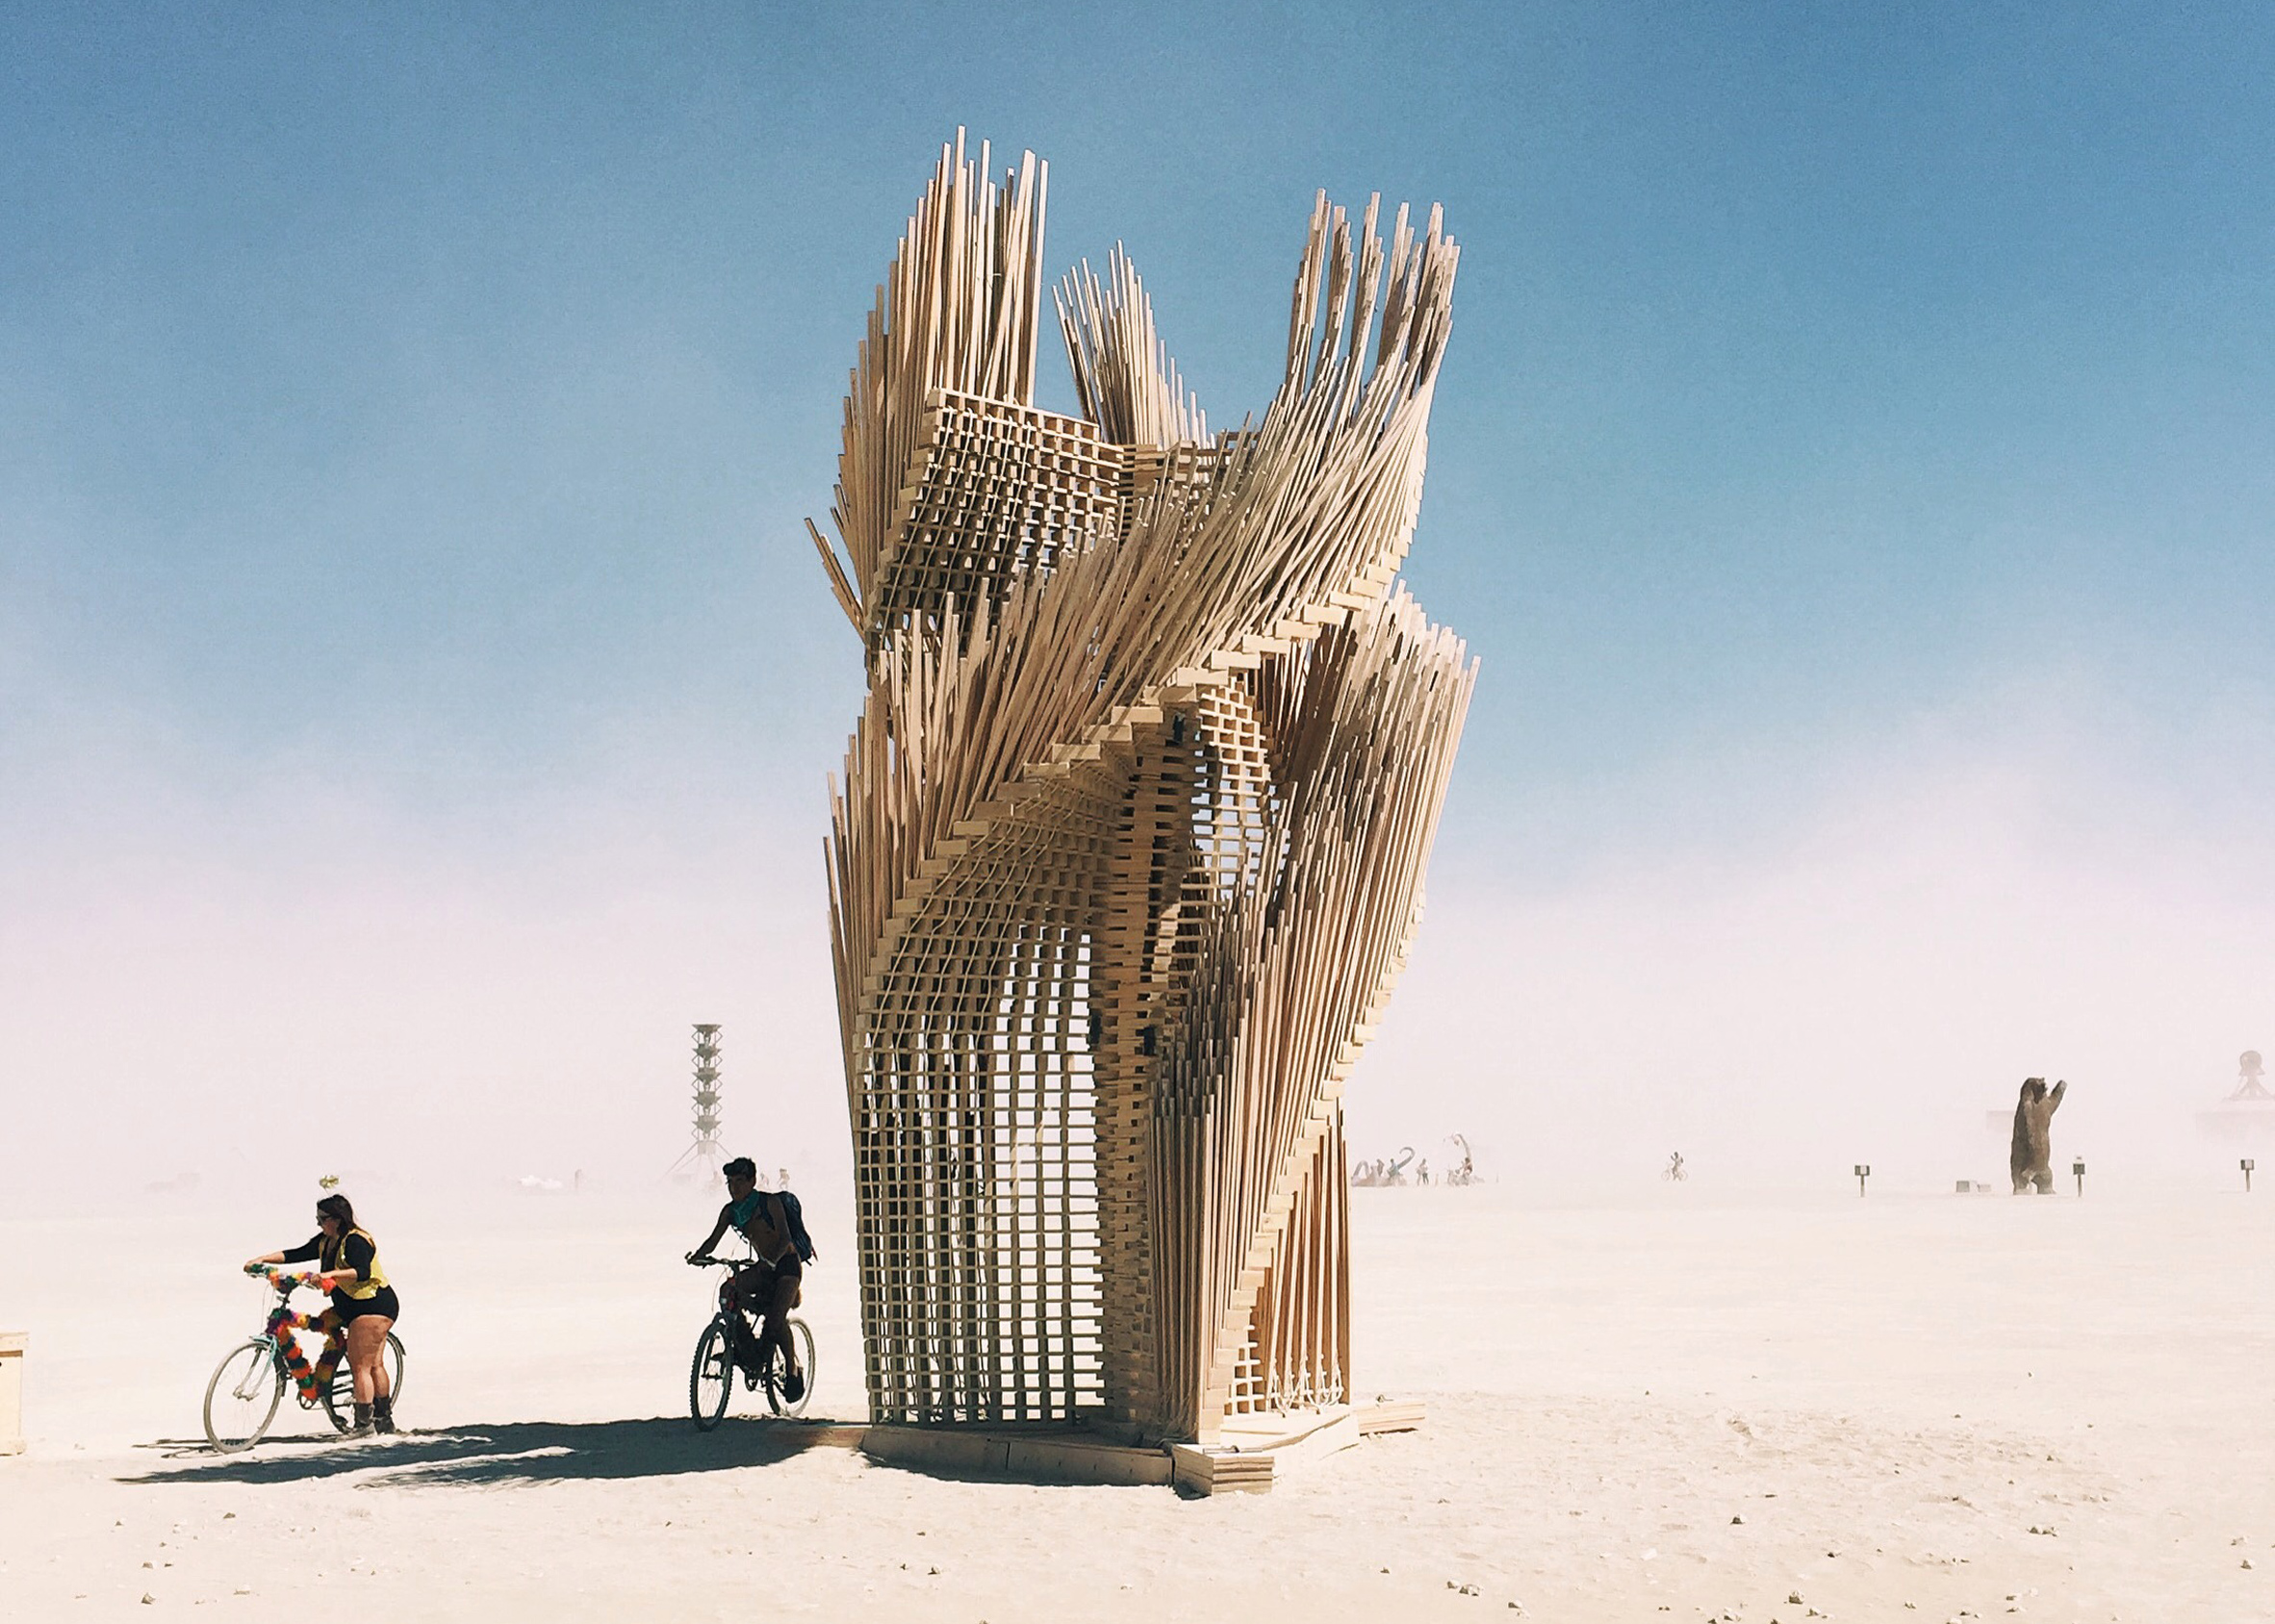 Tangential Dreams by Arthur Mamou-Mani – art of burning man 2016